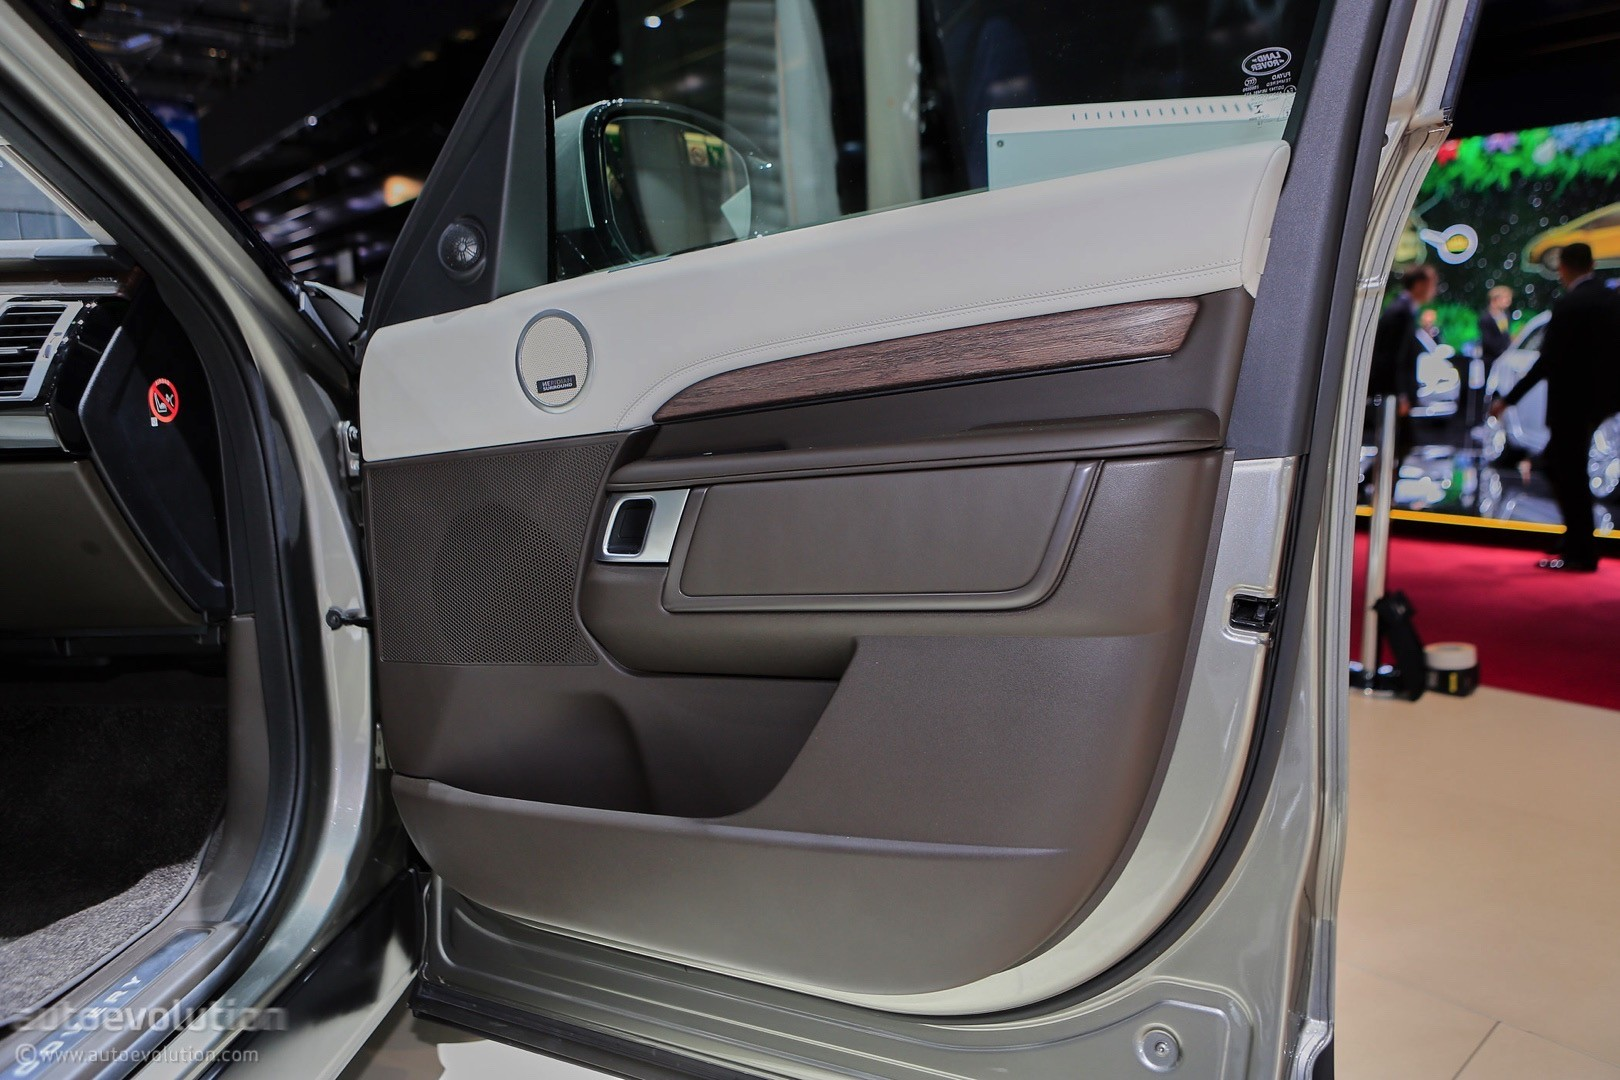 2017 Land Rover Discovery Interior Spy Attempt Offers Limited Results Autoevolution